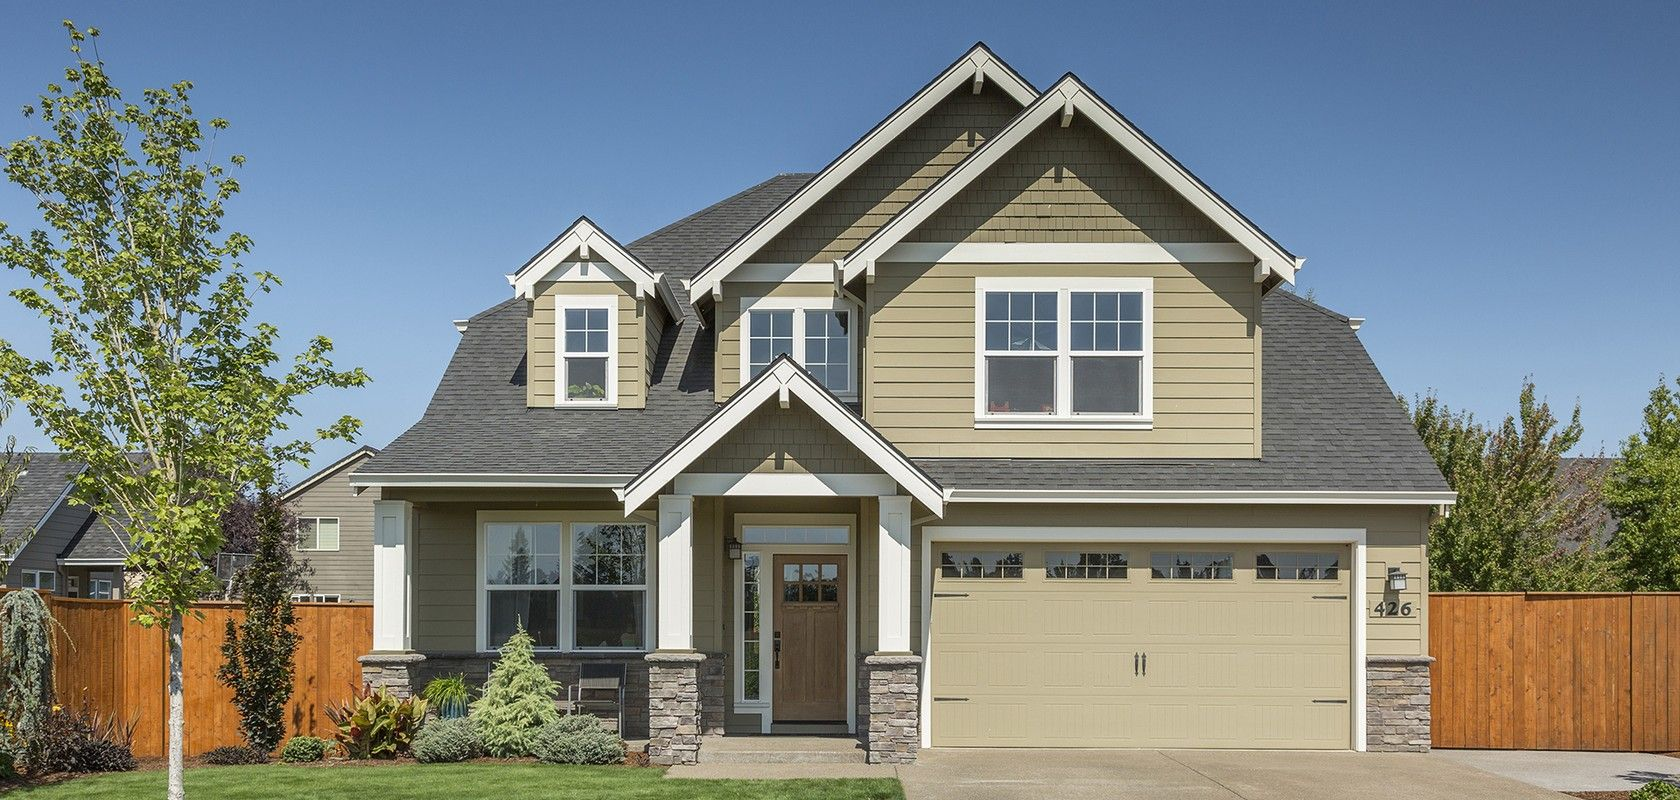 Plan 2230ce The Morecambe Craftsman House Plans House Plans Craftsman Style House Plans